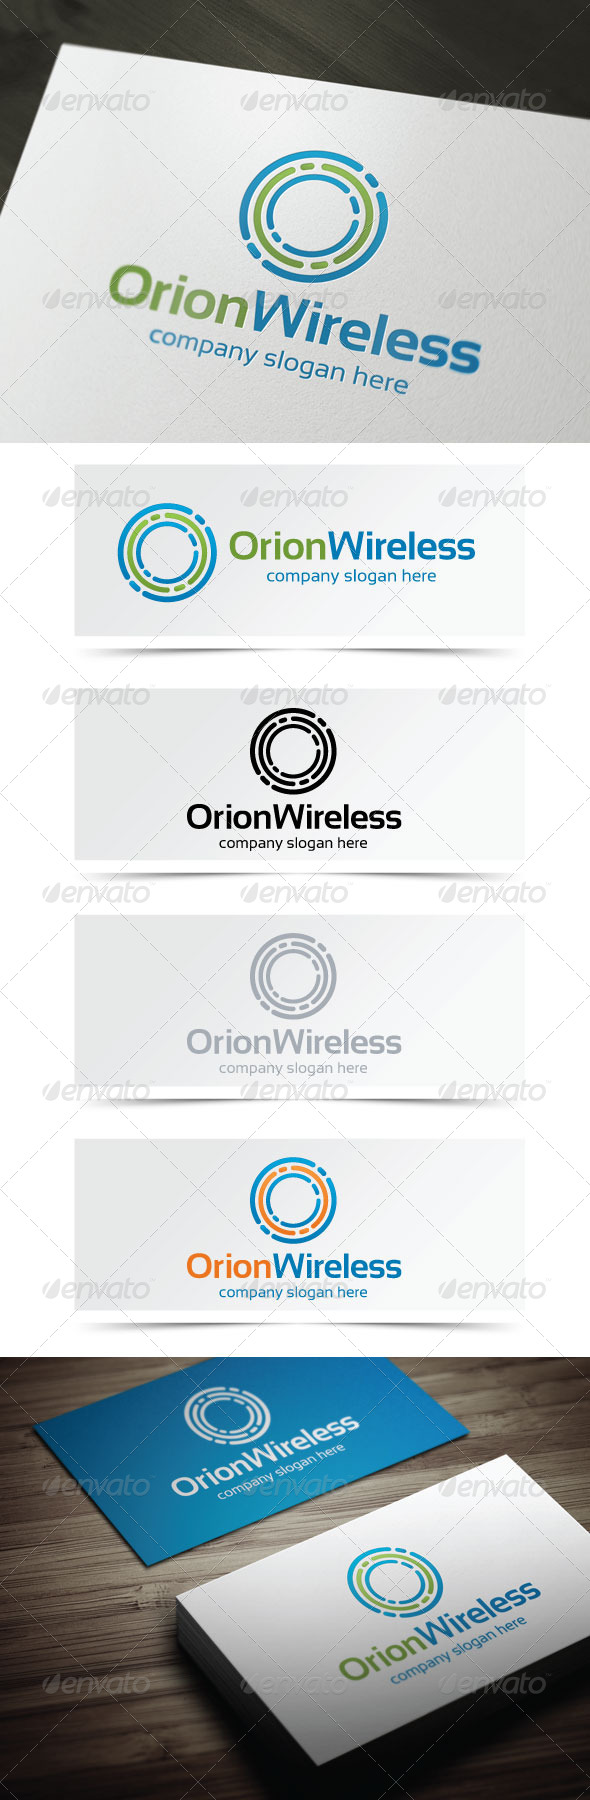 GraphicRiver Orion Wireless 5054696